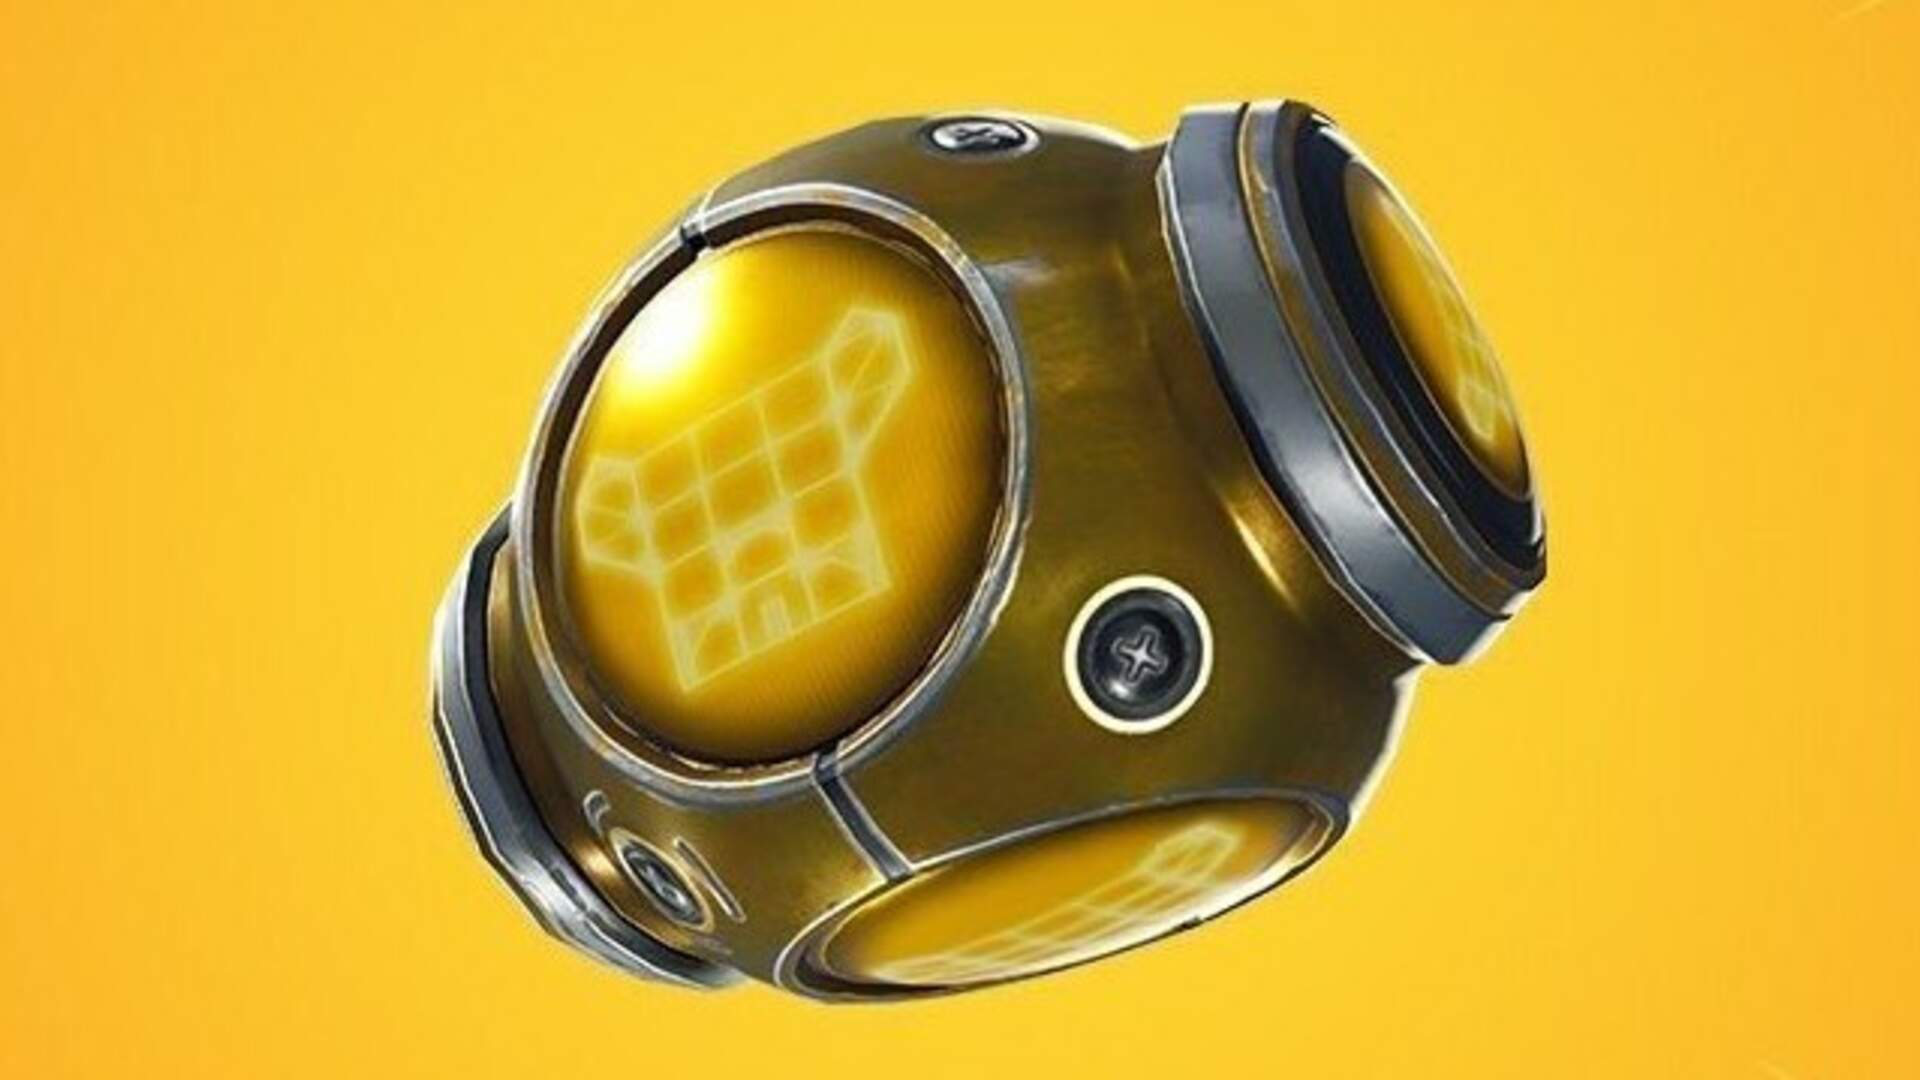 Fortnite V5.41 Update Out Now, Includes Port-a-Fortress and New Spiky Stadium